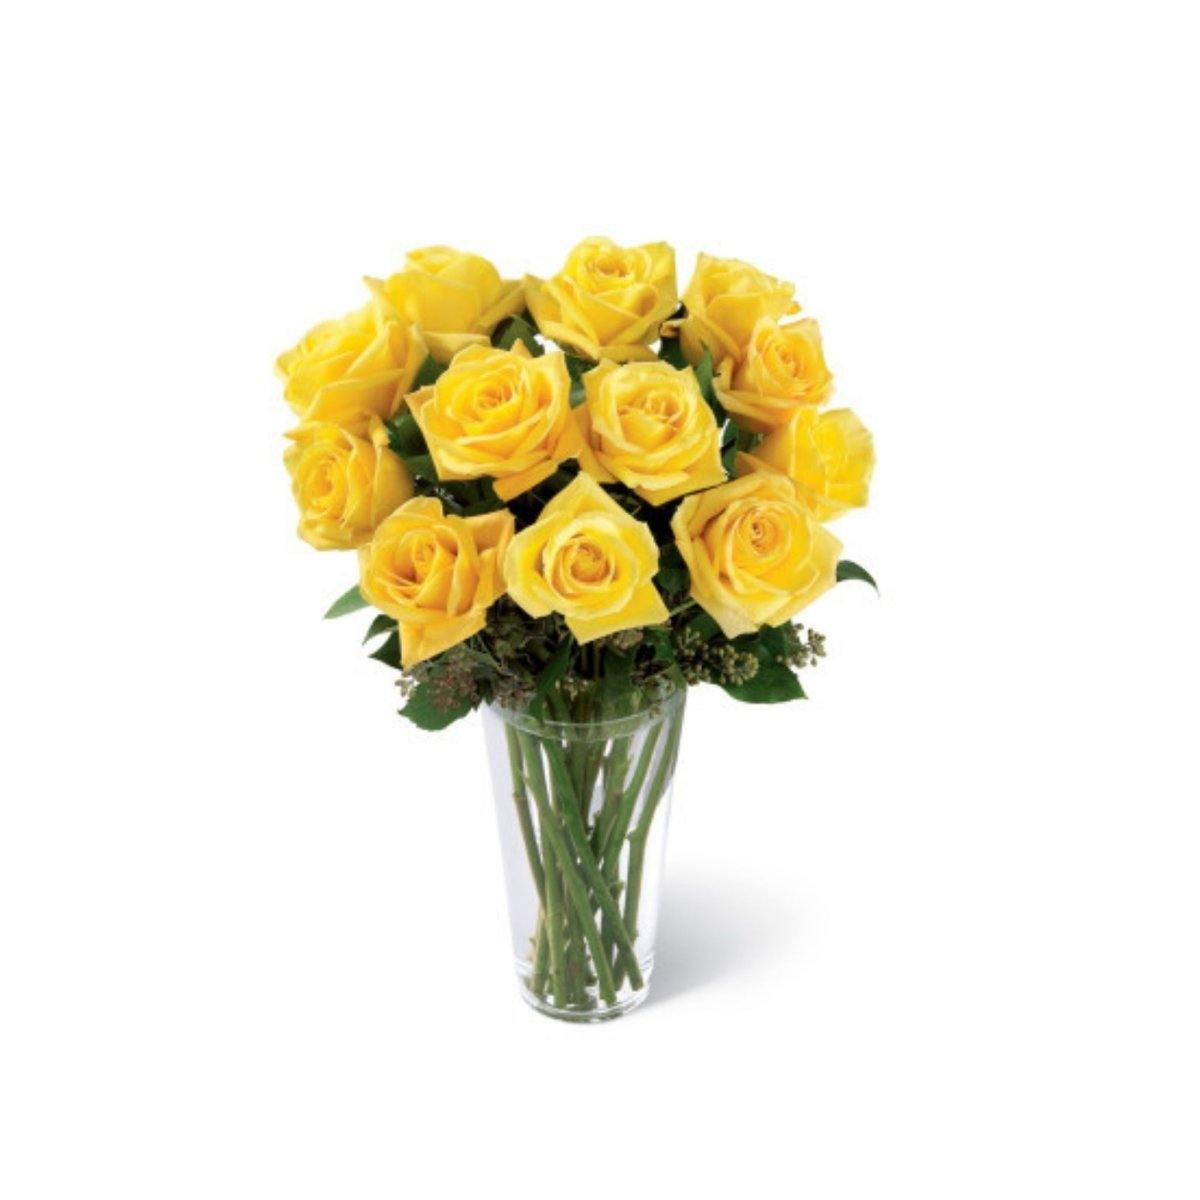 The FTD® Yellow Rose Sympathy Bouquet - Shalimar Flower Shop